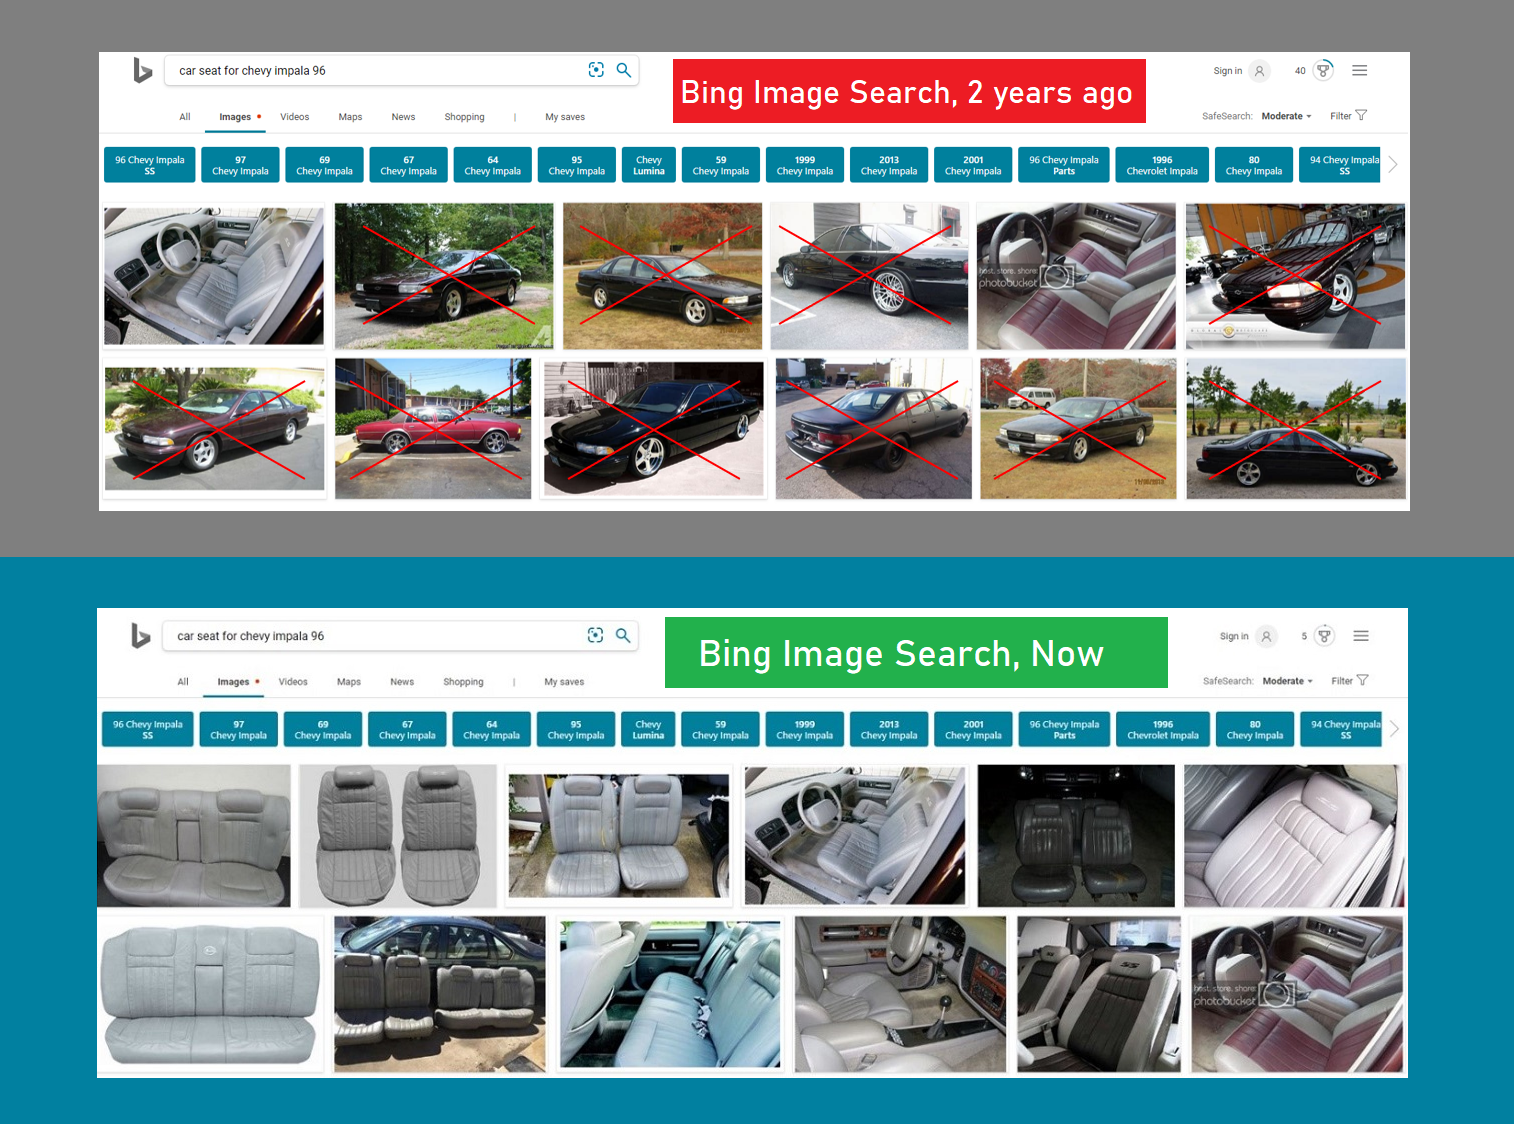 The following examples show how Bing results for one of the tricky queries ({car seat for Chevy impala 96}) evolved over the past two years continuously improving with incremental incorporation of deep learning techniques in the Bing stack.